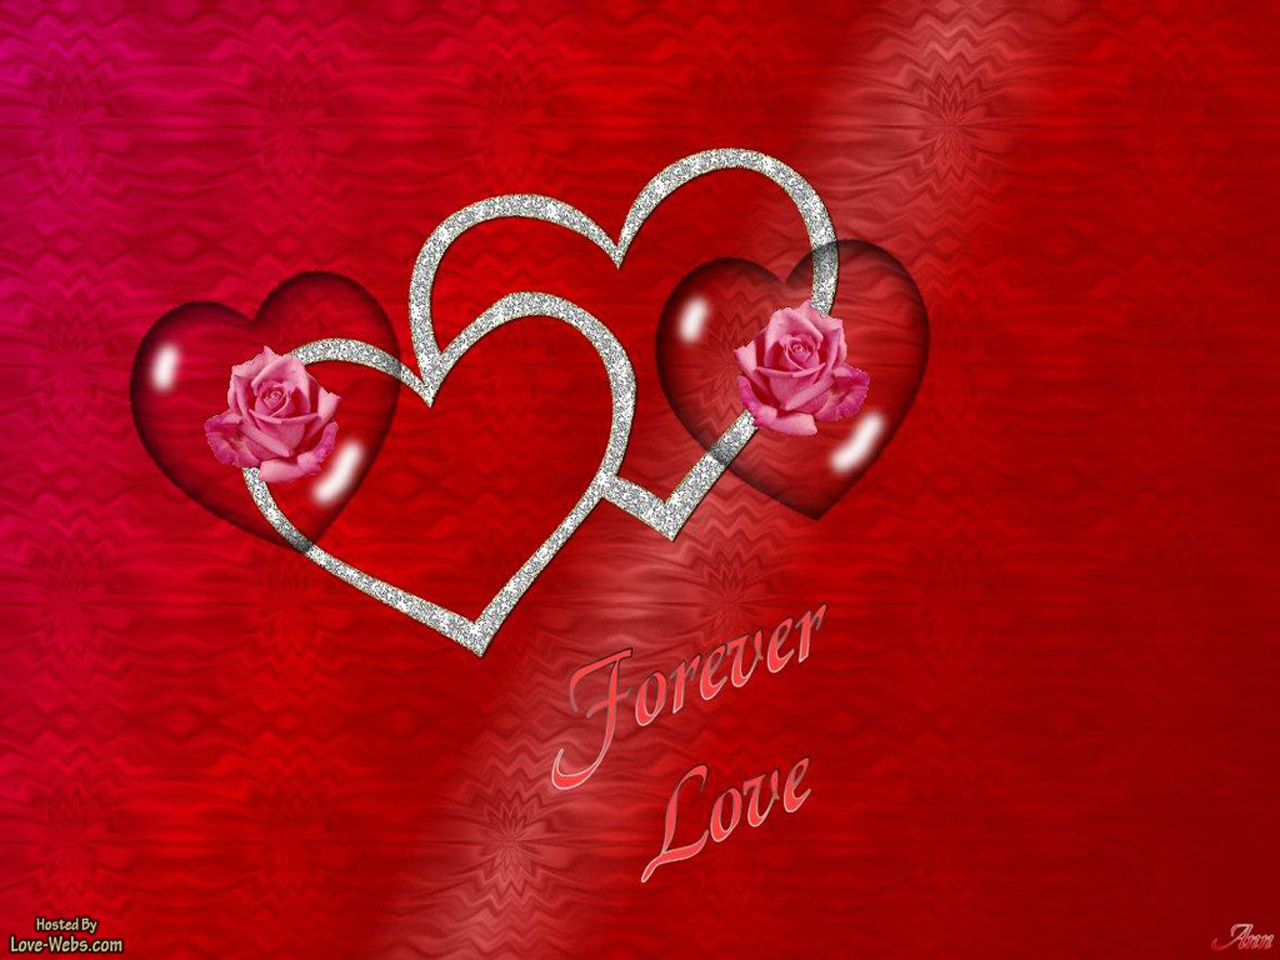 Love Wallpaper With Edit Name : All In One computer, Mobiles, Software, Keys, Islamic Wallpapers, Others Wallpapers, Videos ...